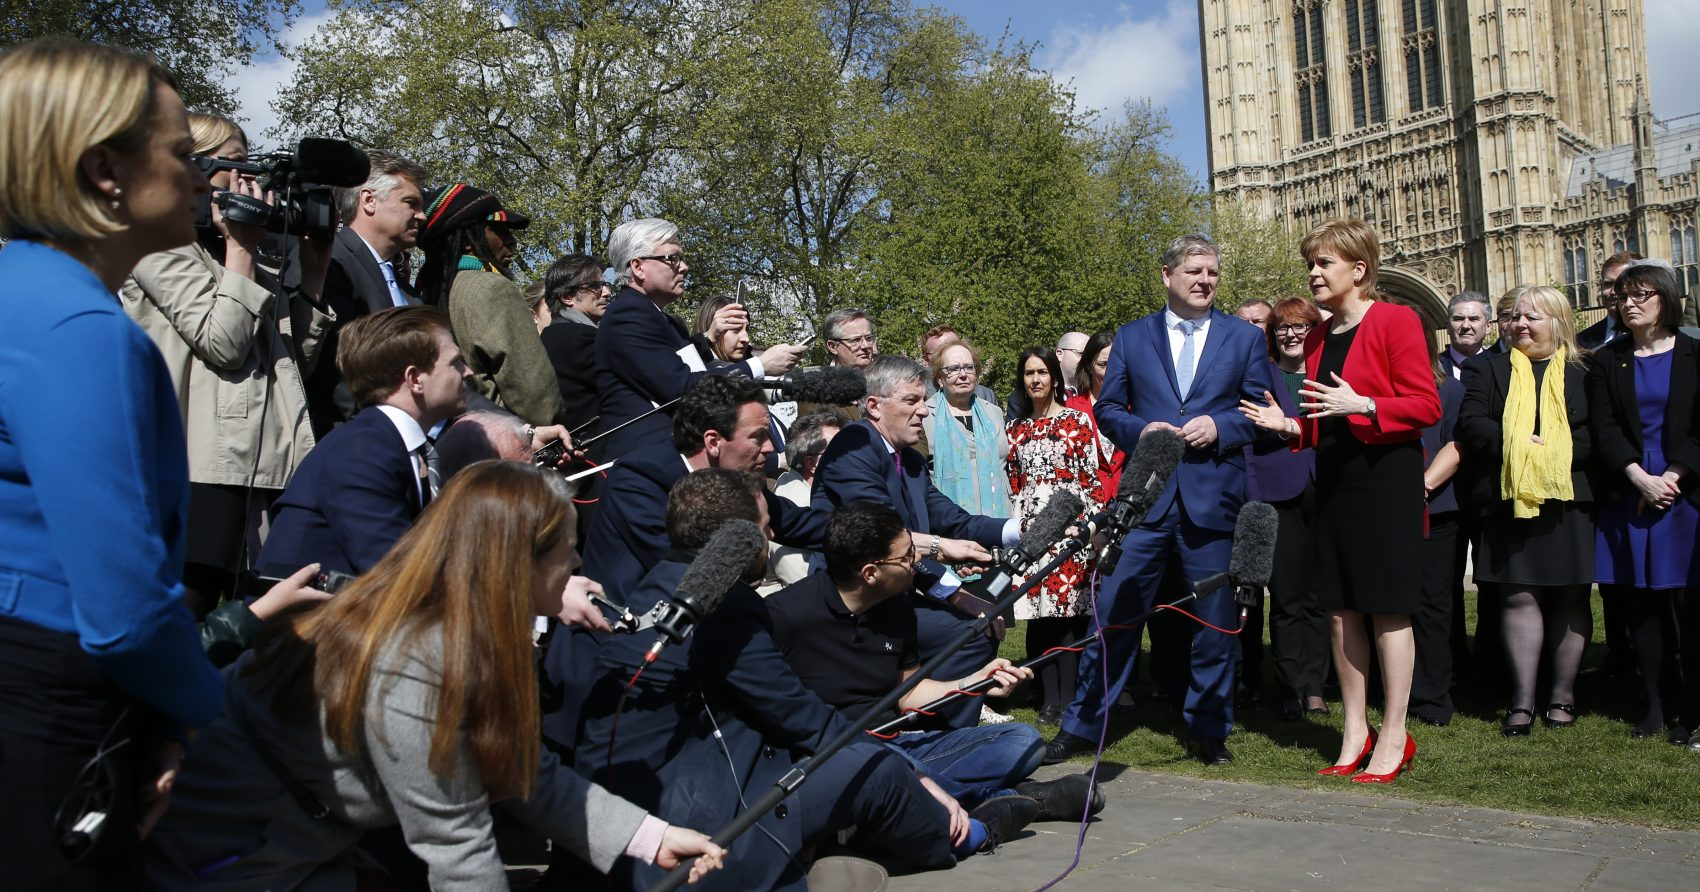 With headstrong leaders on both sides and a long history of conflict, Brexit negotiations promise to be compelling viewing, writes Peter Moloney. Pictured: Scotland's First Minister Nicola Sturgeon, with lawmaker Angus Robertson an SNP member of the UK Parliament, speak to the media outside the Palace of Westminster in London, Wednesday, April 19, 2017. (Alastair Grant/AP)